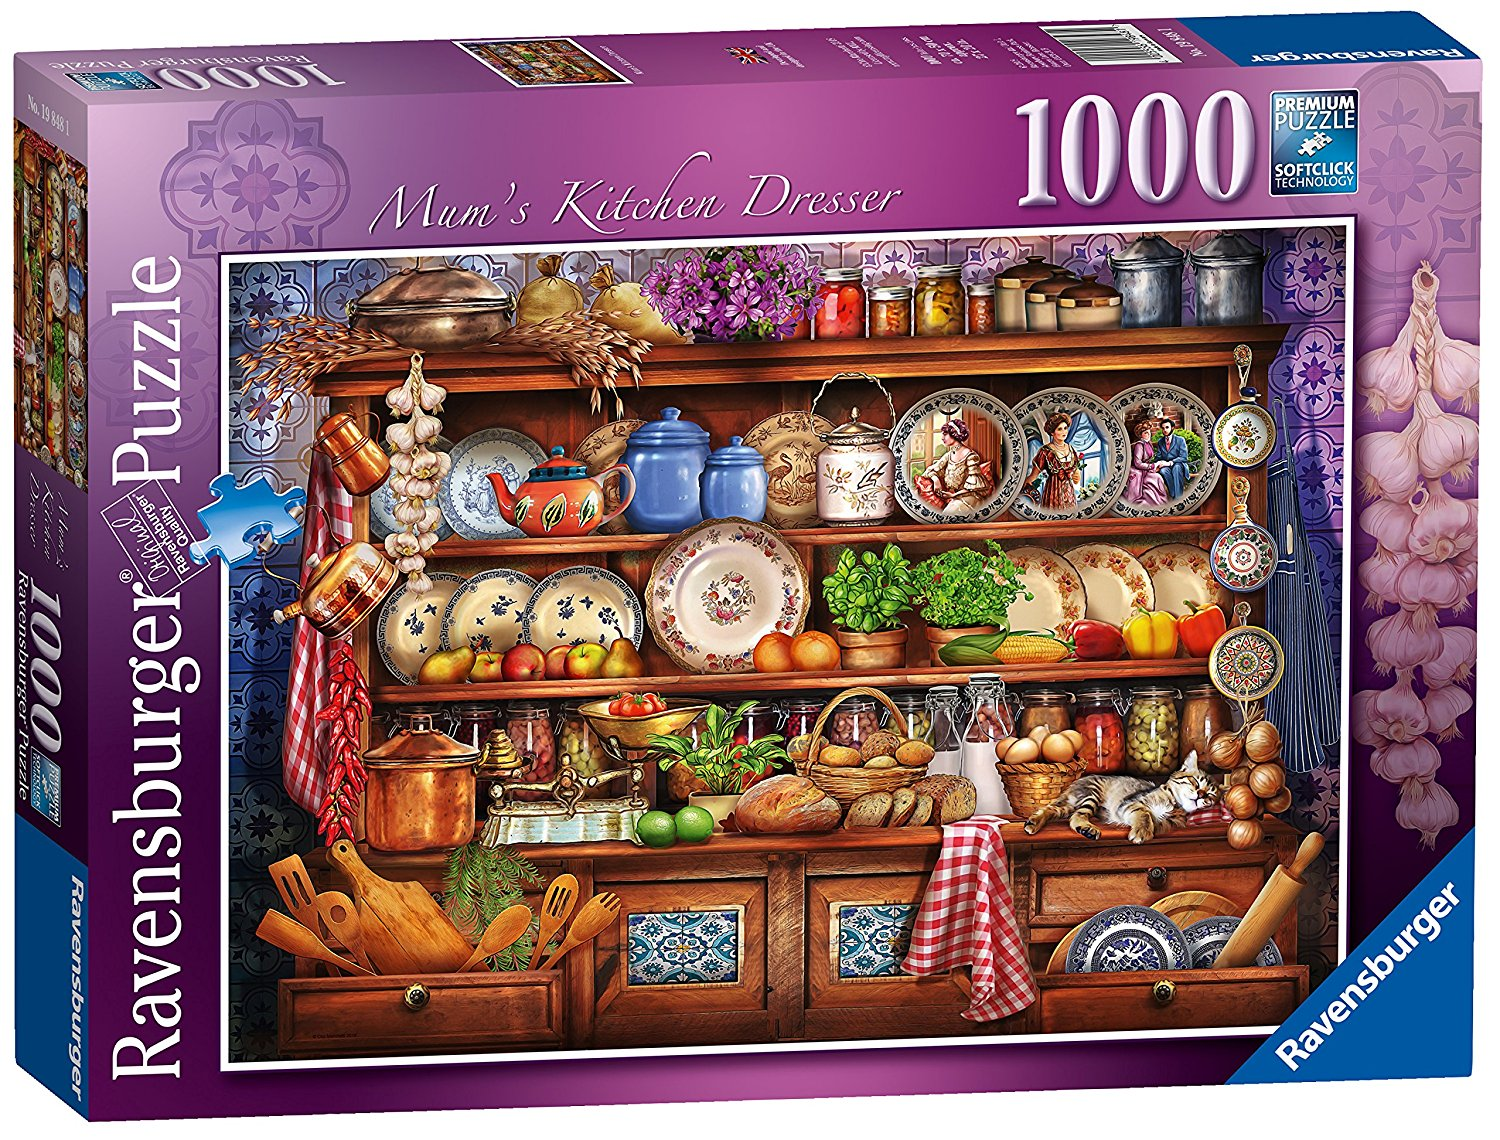 Mum's Kitchen Dresser, 1000pc